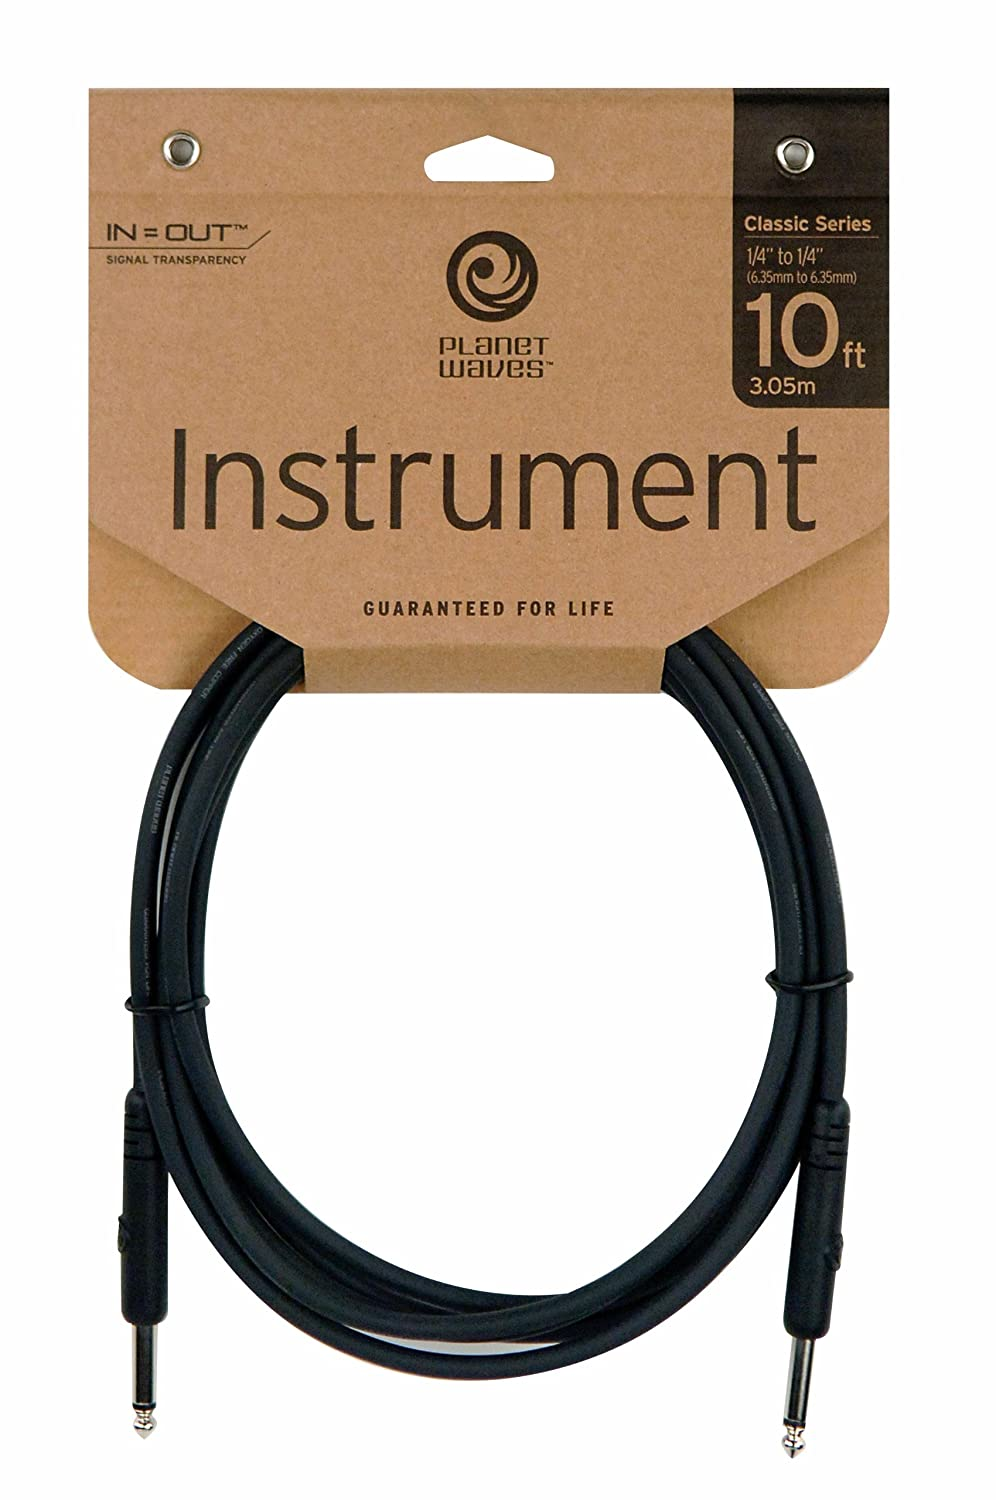 Amazon.com: Planet Waves Classic Series Instrument Cable, 10 feet ...